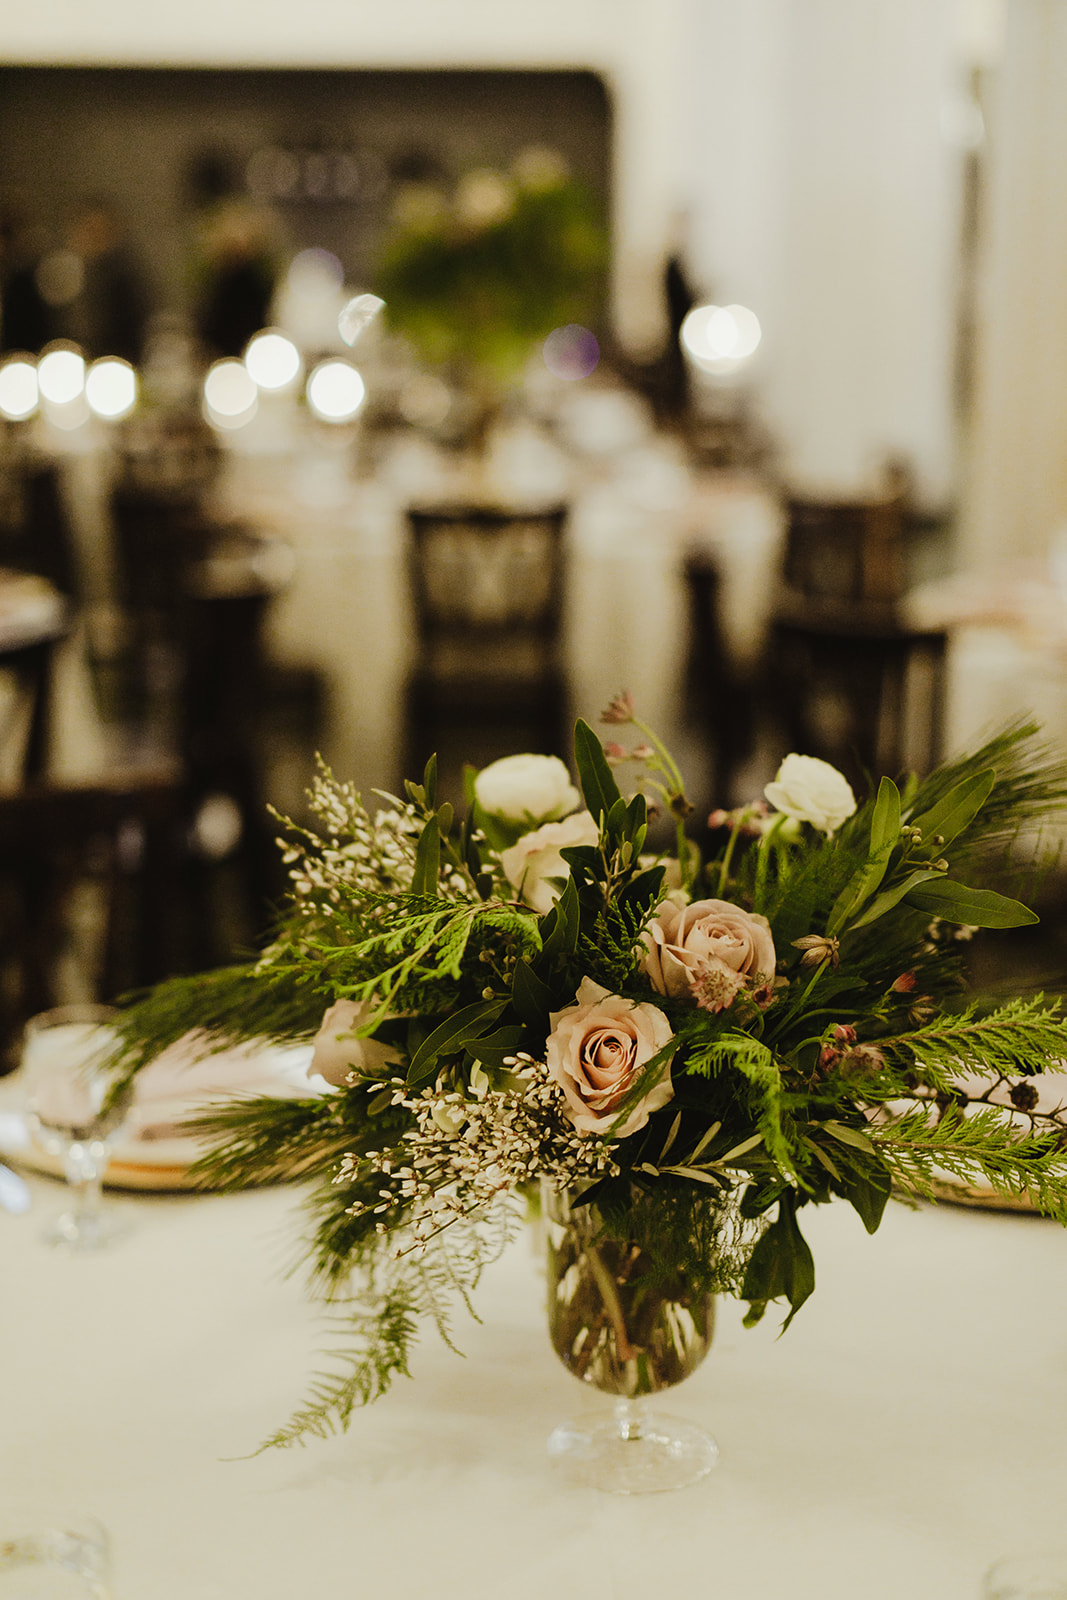 A blush and green floral arrangement on a table at a wedding